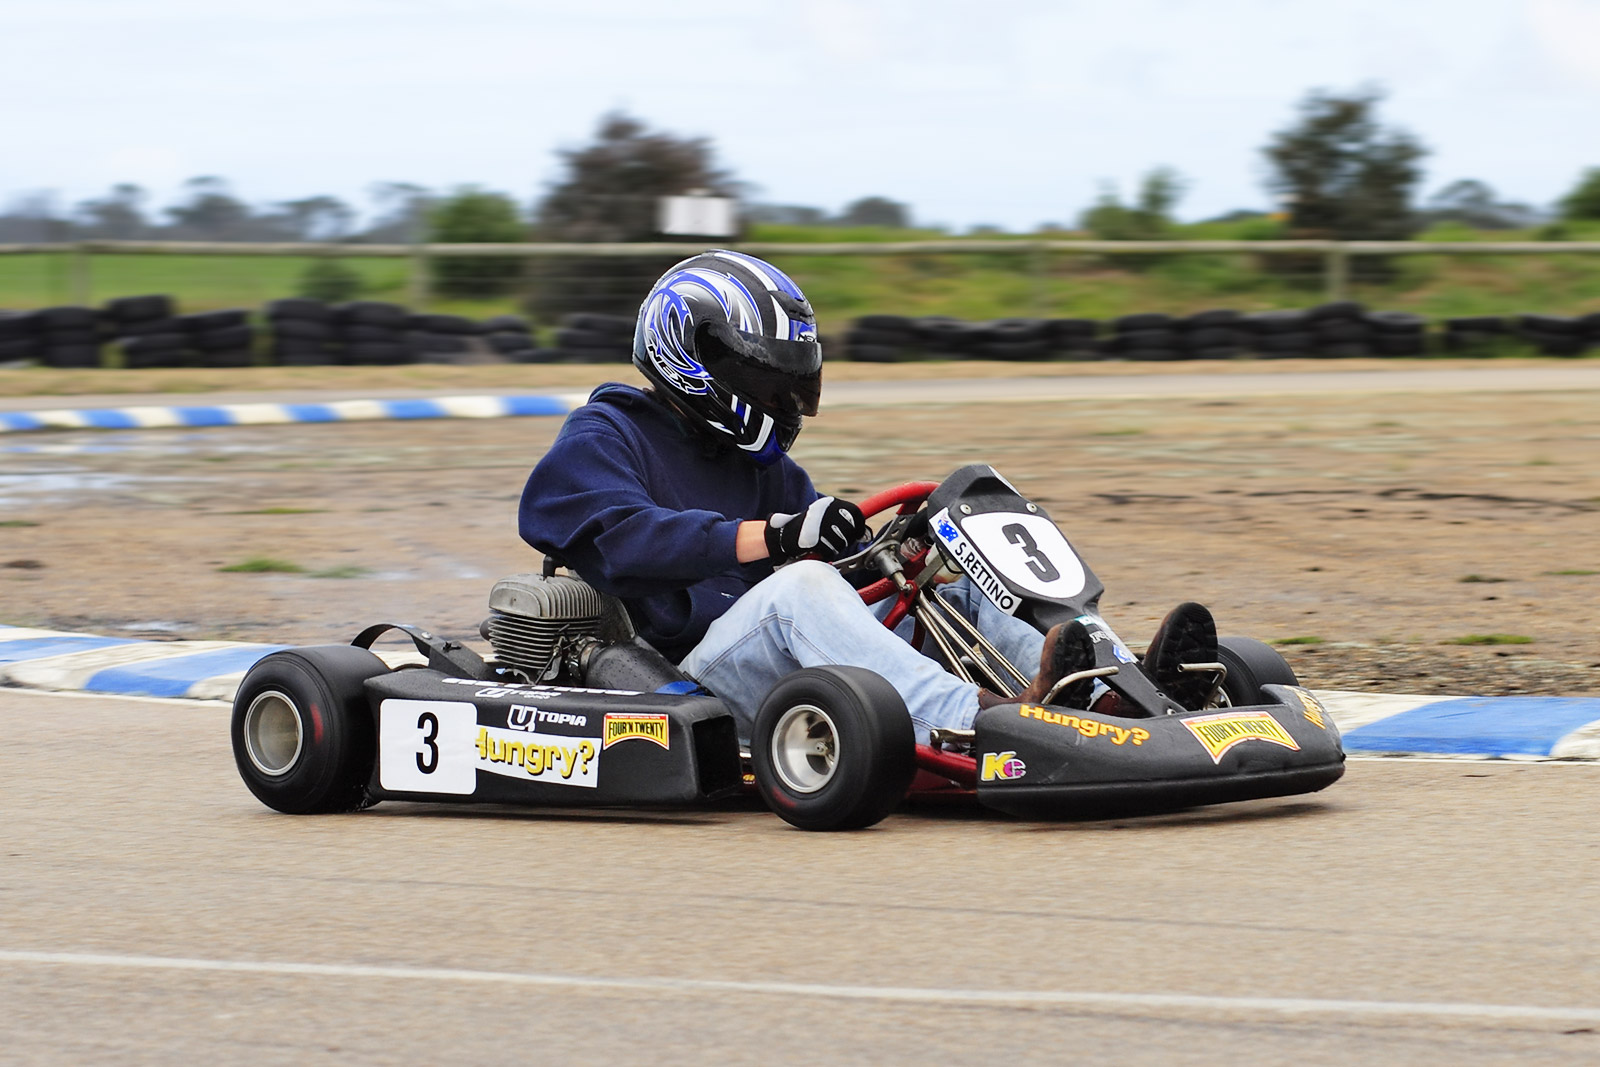 Benz Drift Car >> Old Cars: Used Go Karts - Because Karting Is The Biggest Thrill In The World!